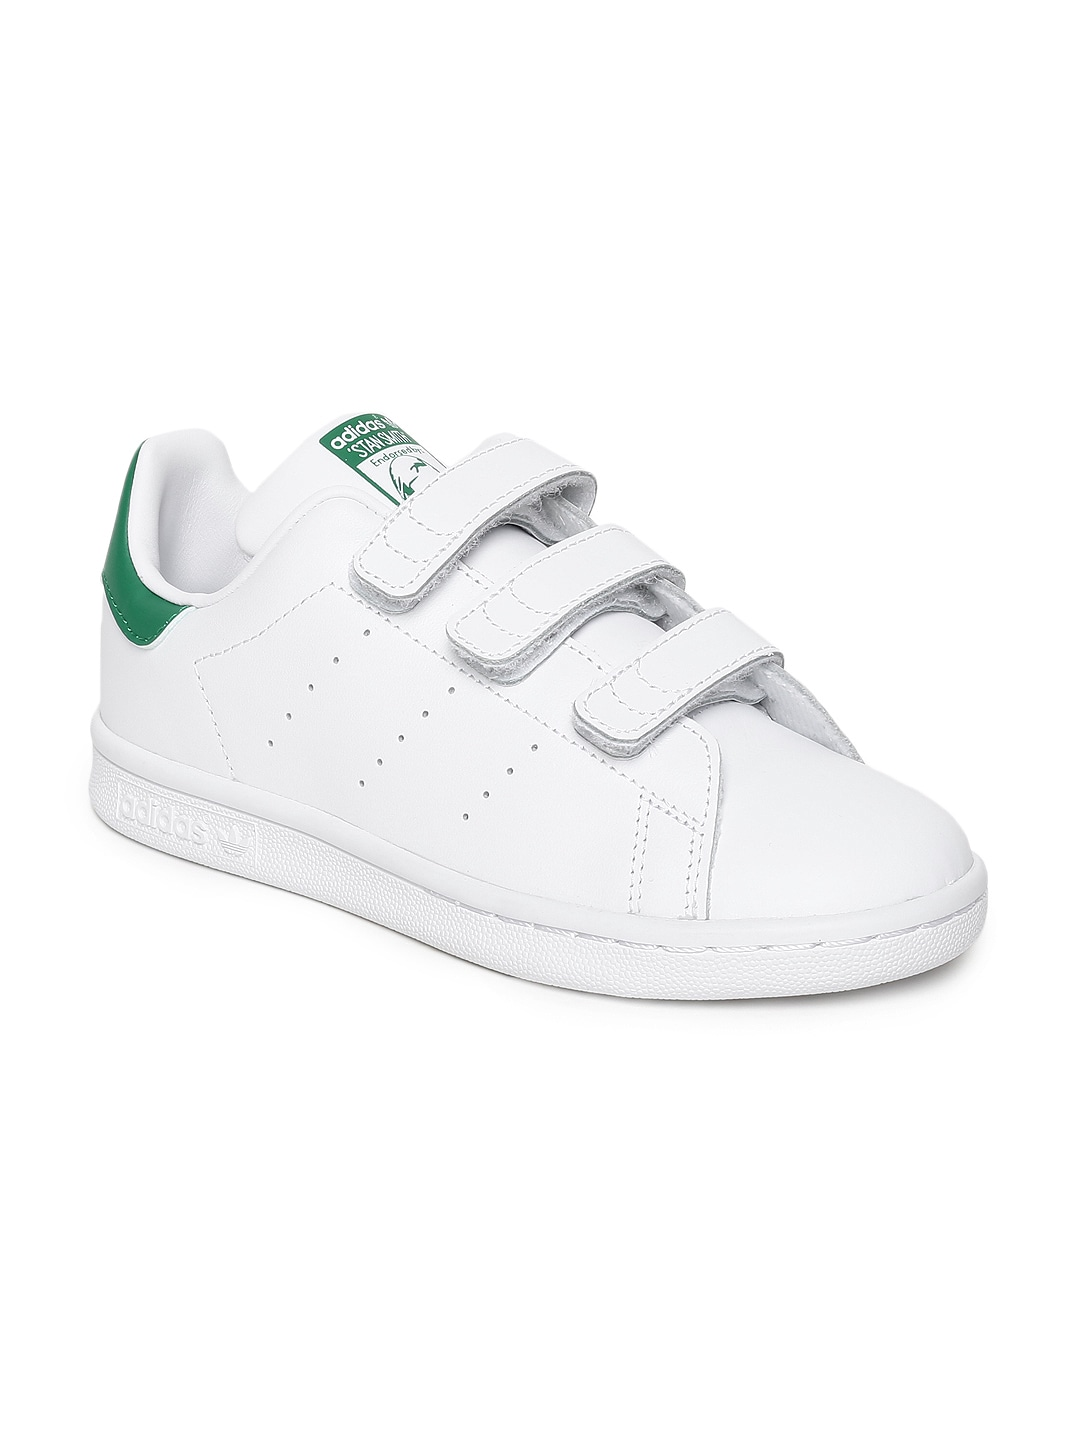 28a33db4fea Adidas Stan Smith Shoes - Buy Adidas Stan Smith Shoes online in India